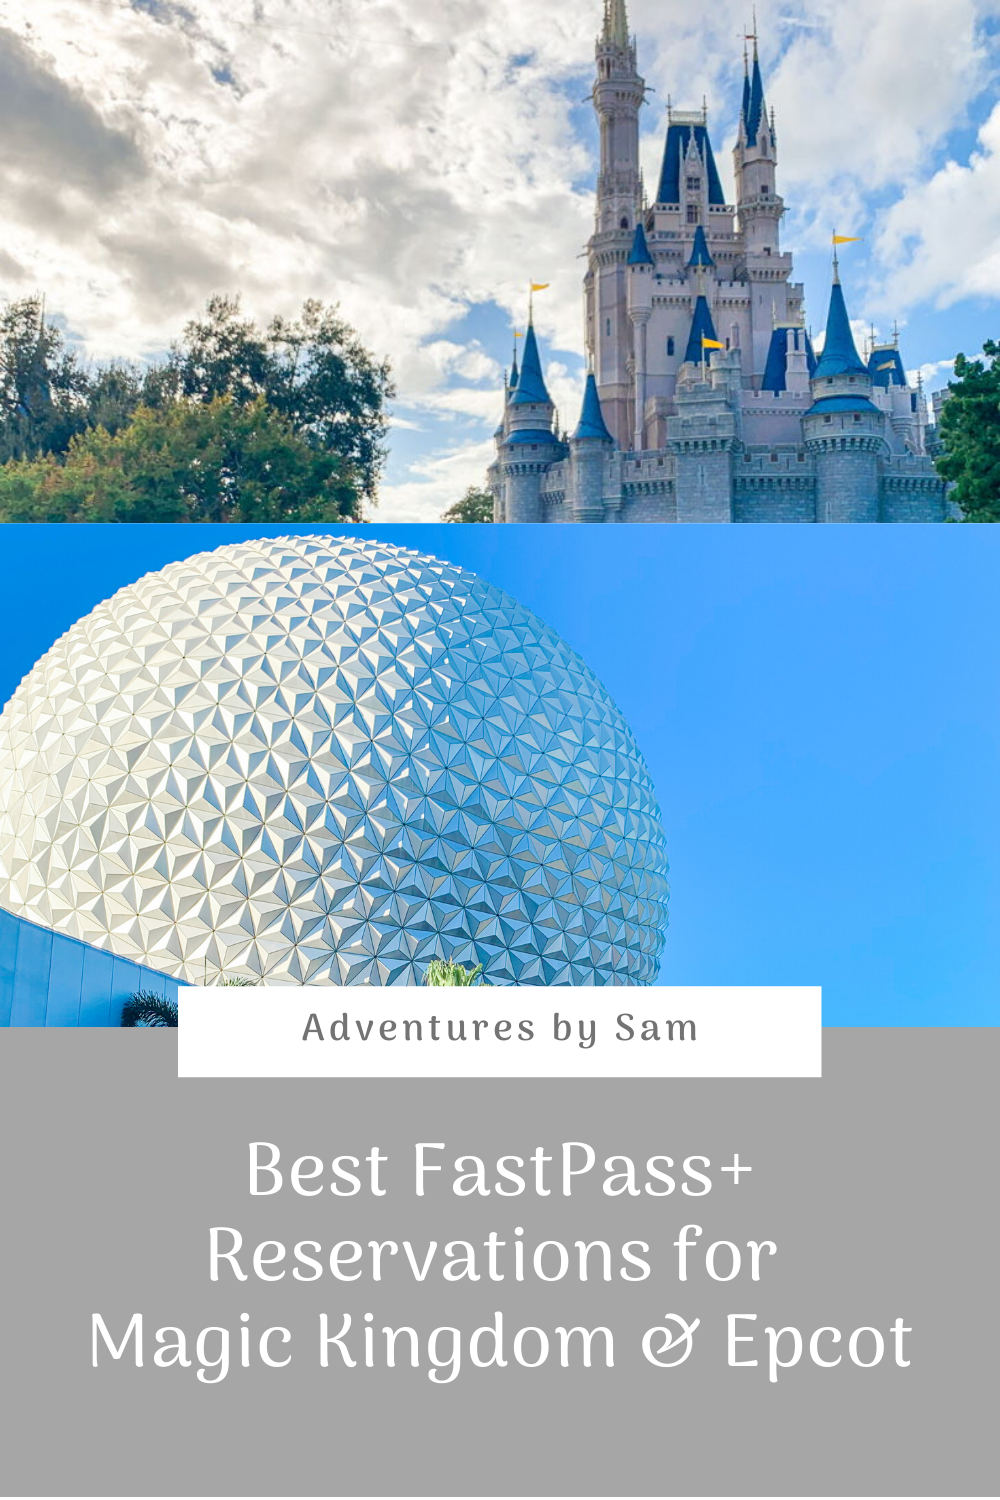 Best FastPass+ Reservations for Magic Kingdom & Epcot (Thumbnail)